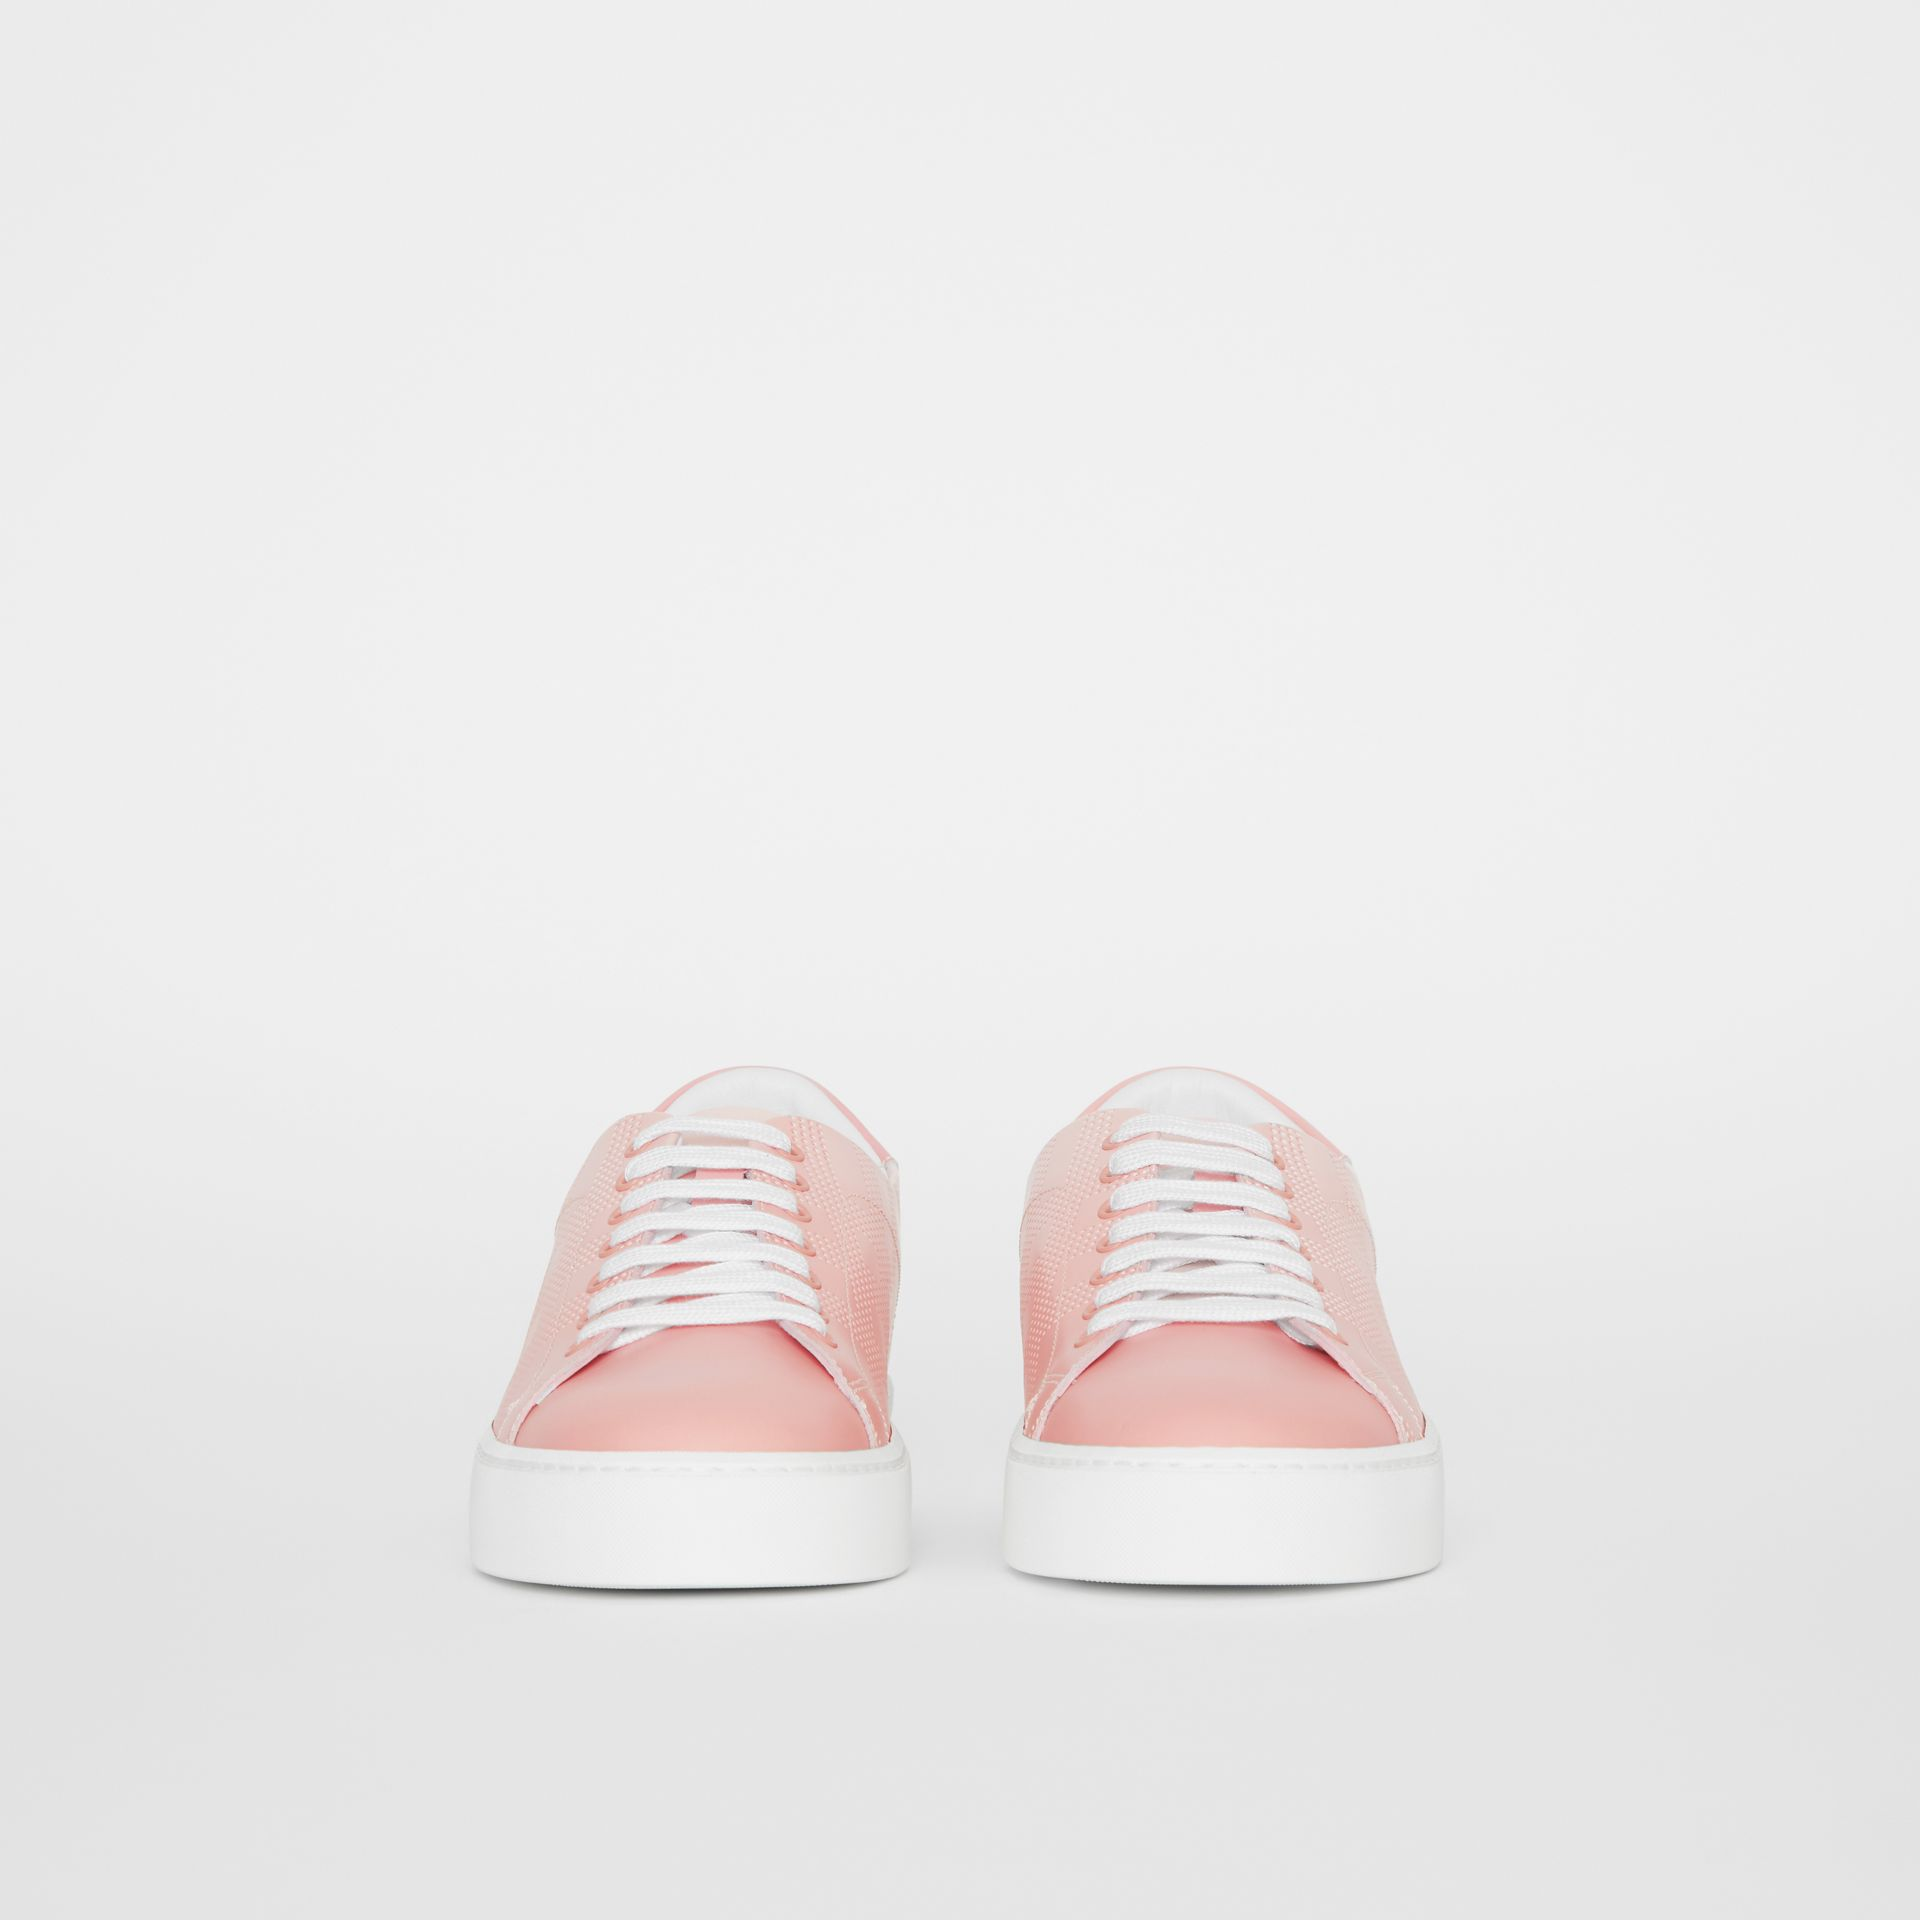 Perforated Check Dégradé Leather Sneakers in Sugar Pink - Women | Burberry - gallery image 4